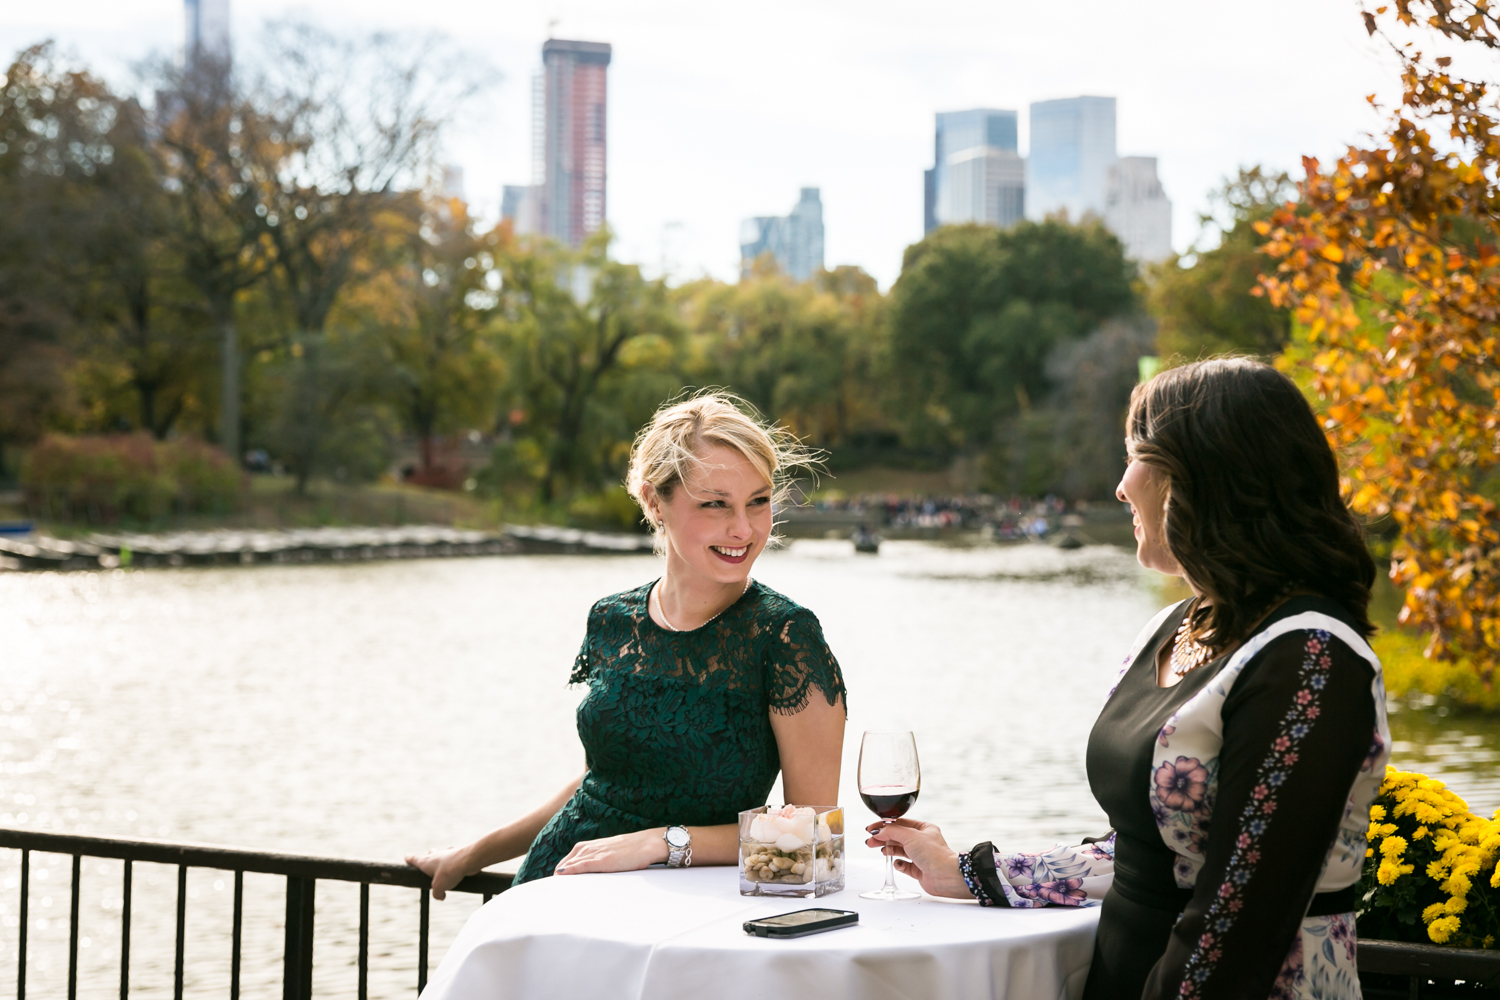 Two guests at a table on the patio at the Loeb Boathouse